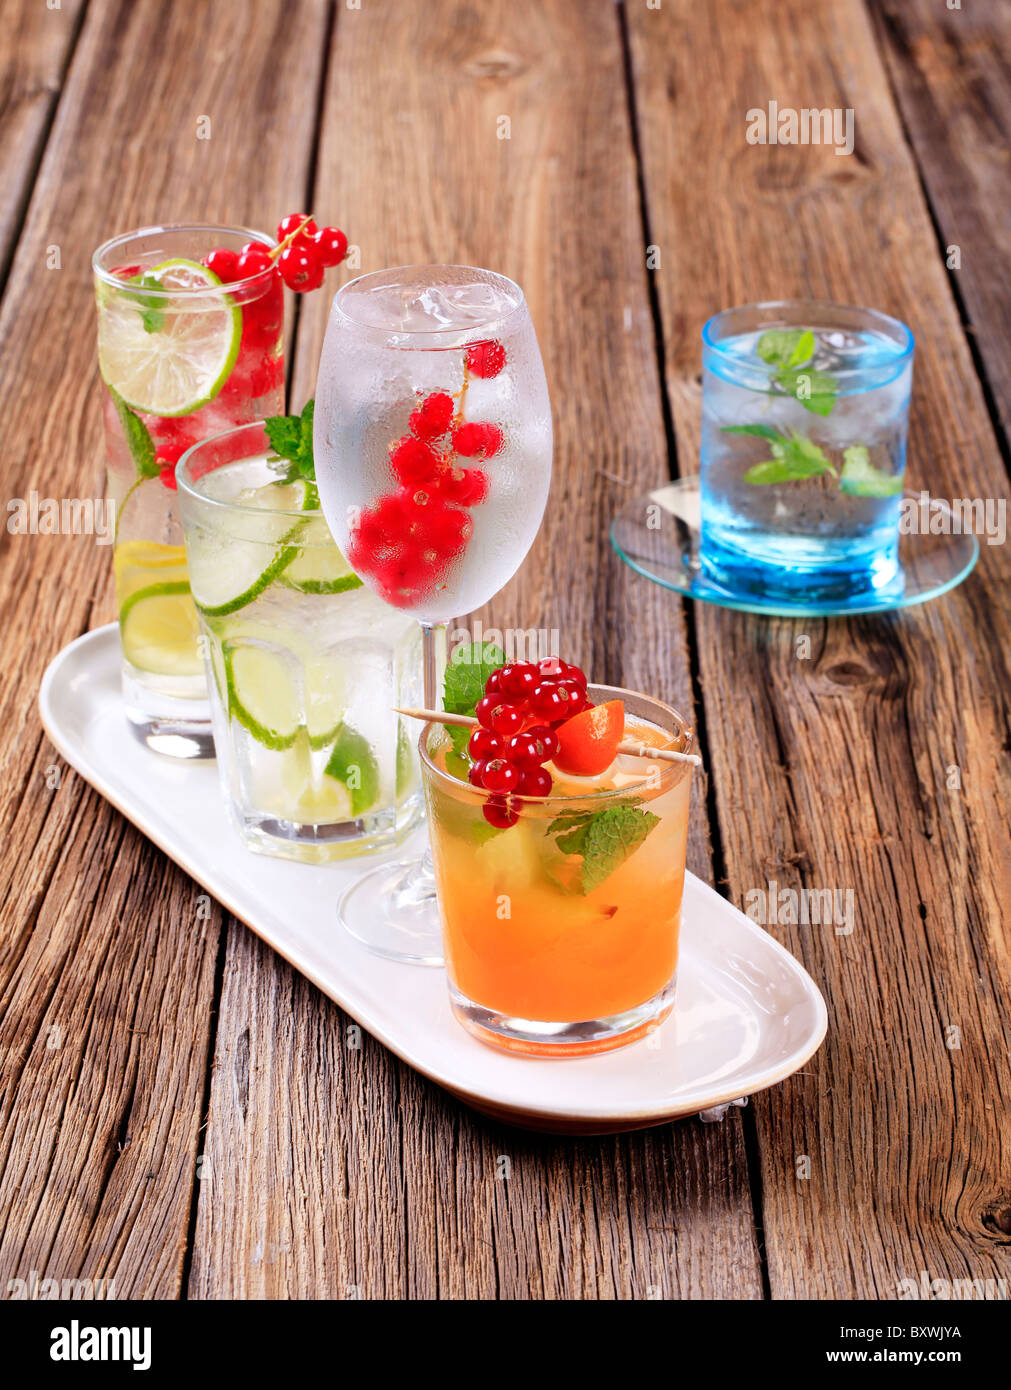 Glasses of iced drinks garnished with fresh fruit - Stock Image